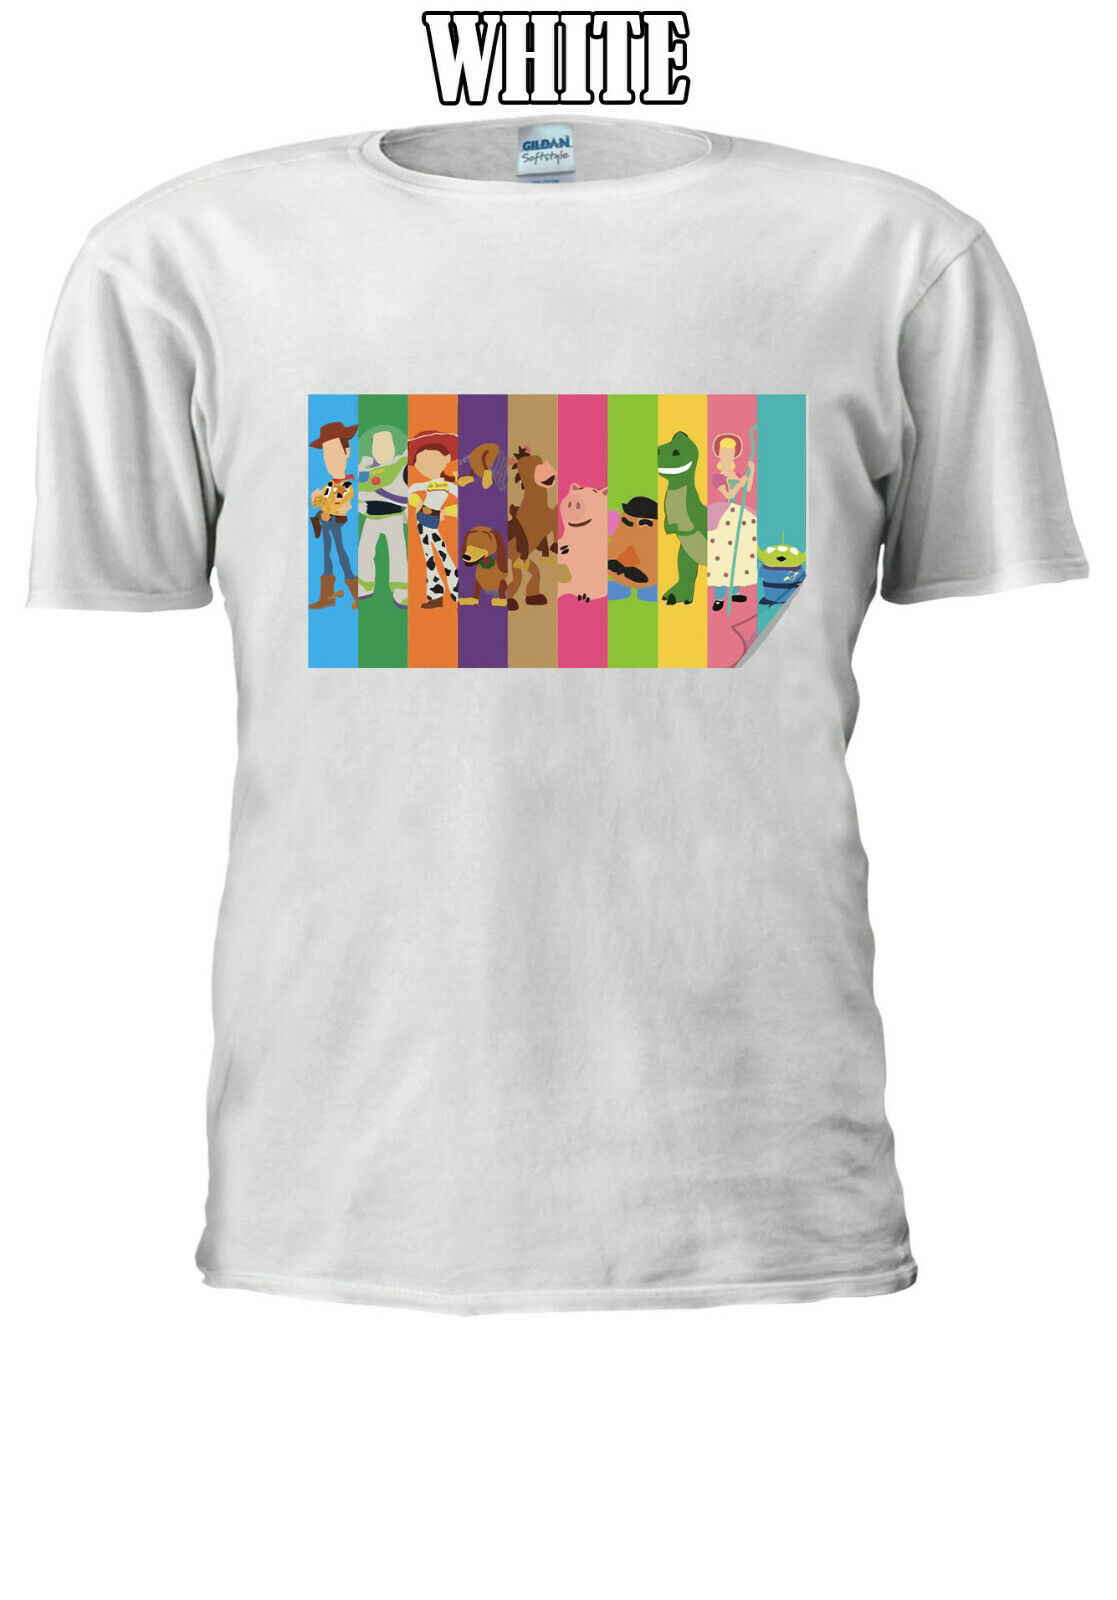 Toy Story Main Characters T-shirt Men Women Unisex <font><b>V8</b></font> Men Women Unisex Fashion <font><b>tshirt</b></font> Free Shipping image